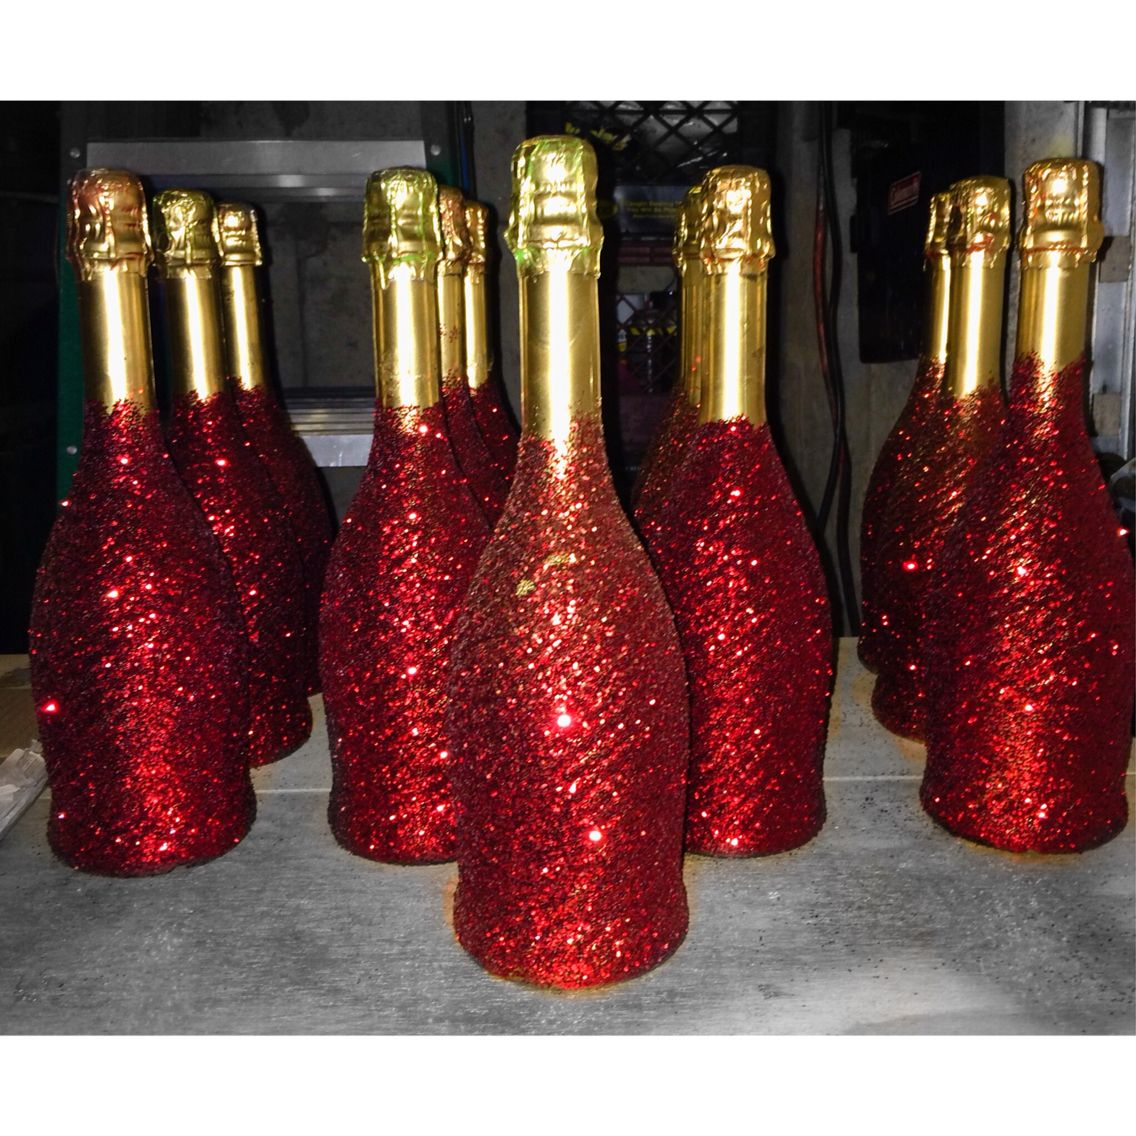 Spray Painted Gold With Red Glitter. Hollywood Baby Shower.